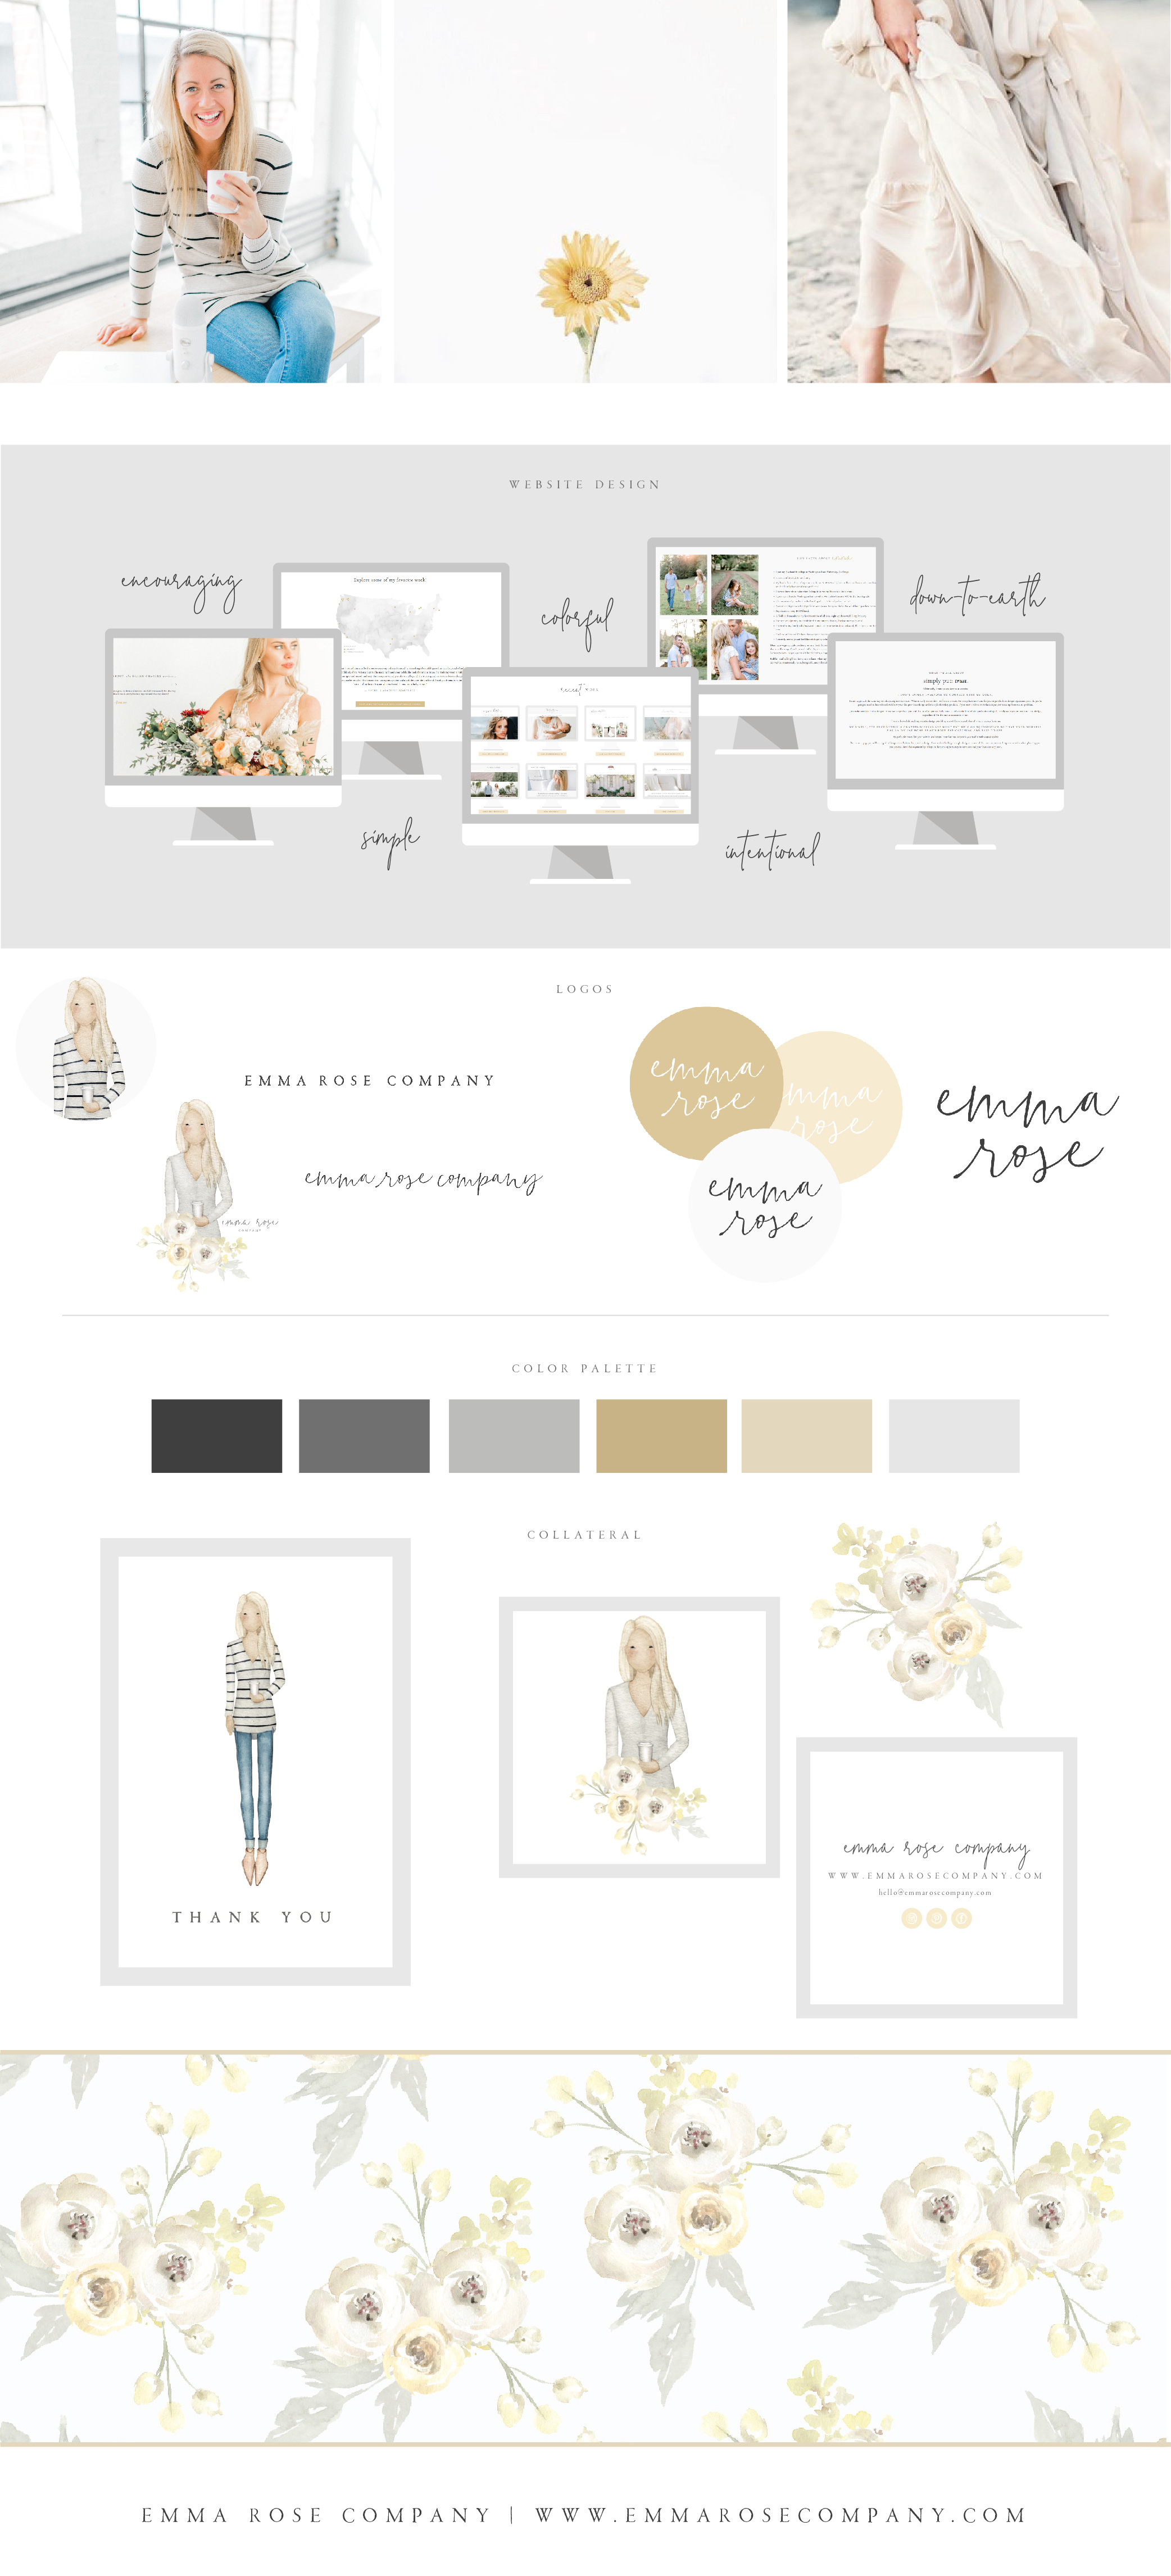 Emma Rose Company Squarespace Website Designer for Photographers   Alexis Ralston Photography Web Design Launch   ERC Designs   Beautiful Film Photography and Branding